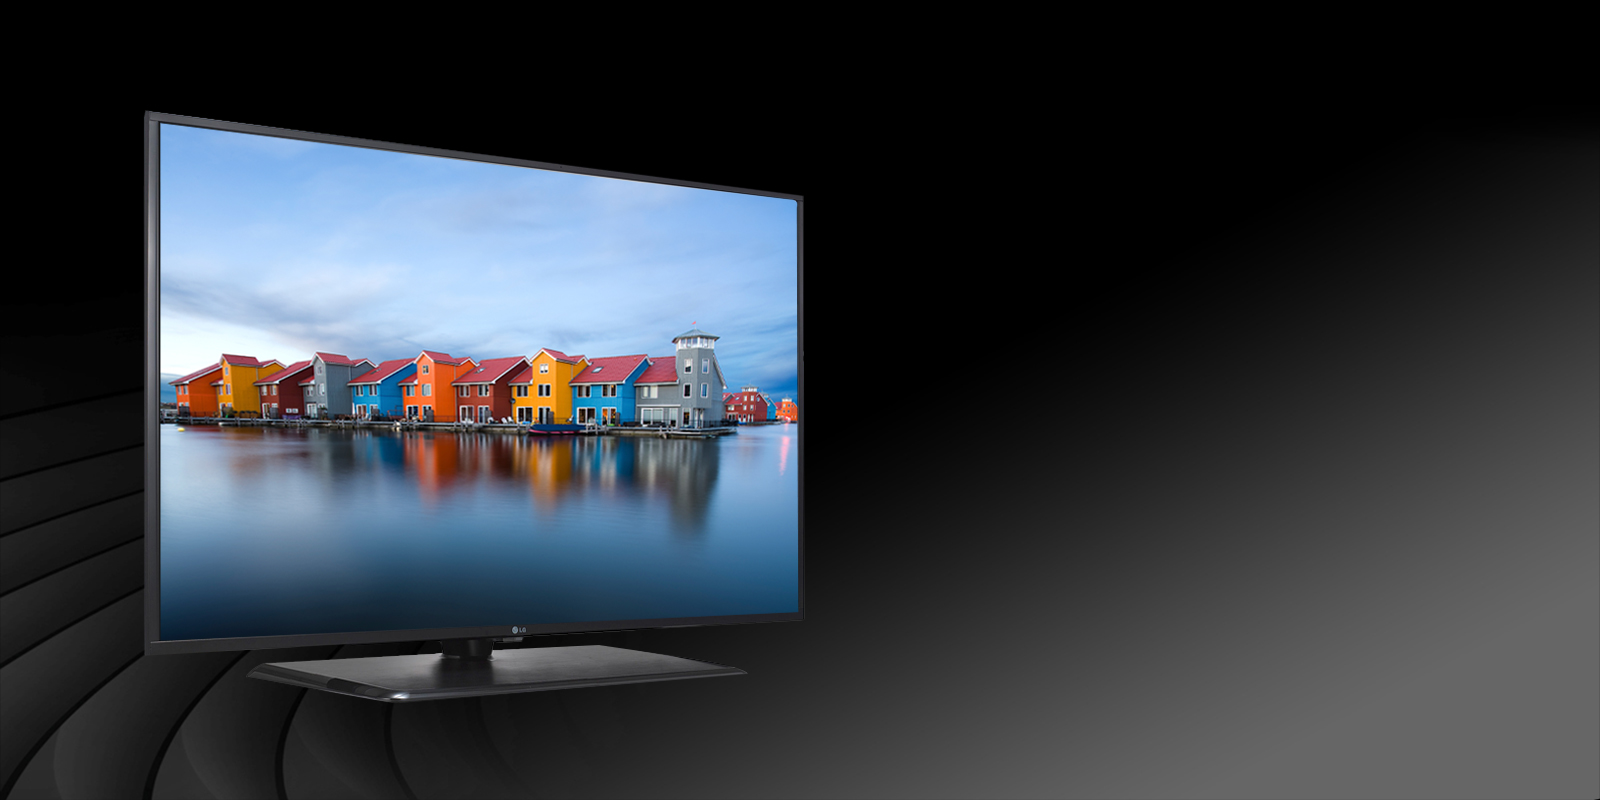 Lg 55 Inch 55lf55 1080p Led Tv Snappy 55 Inch Hd Tv